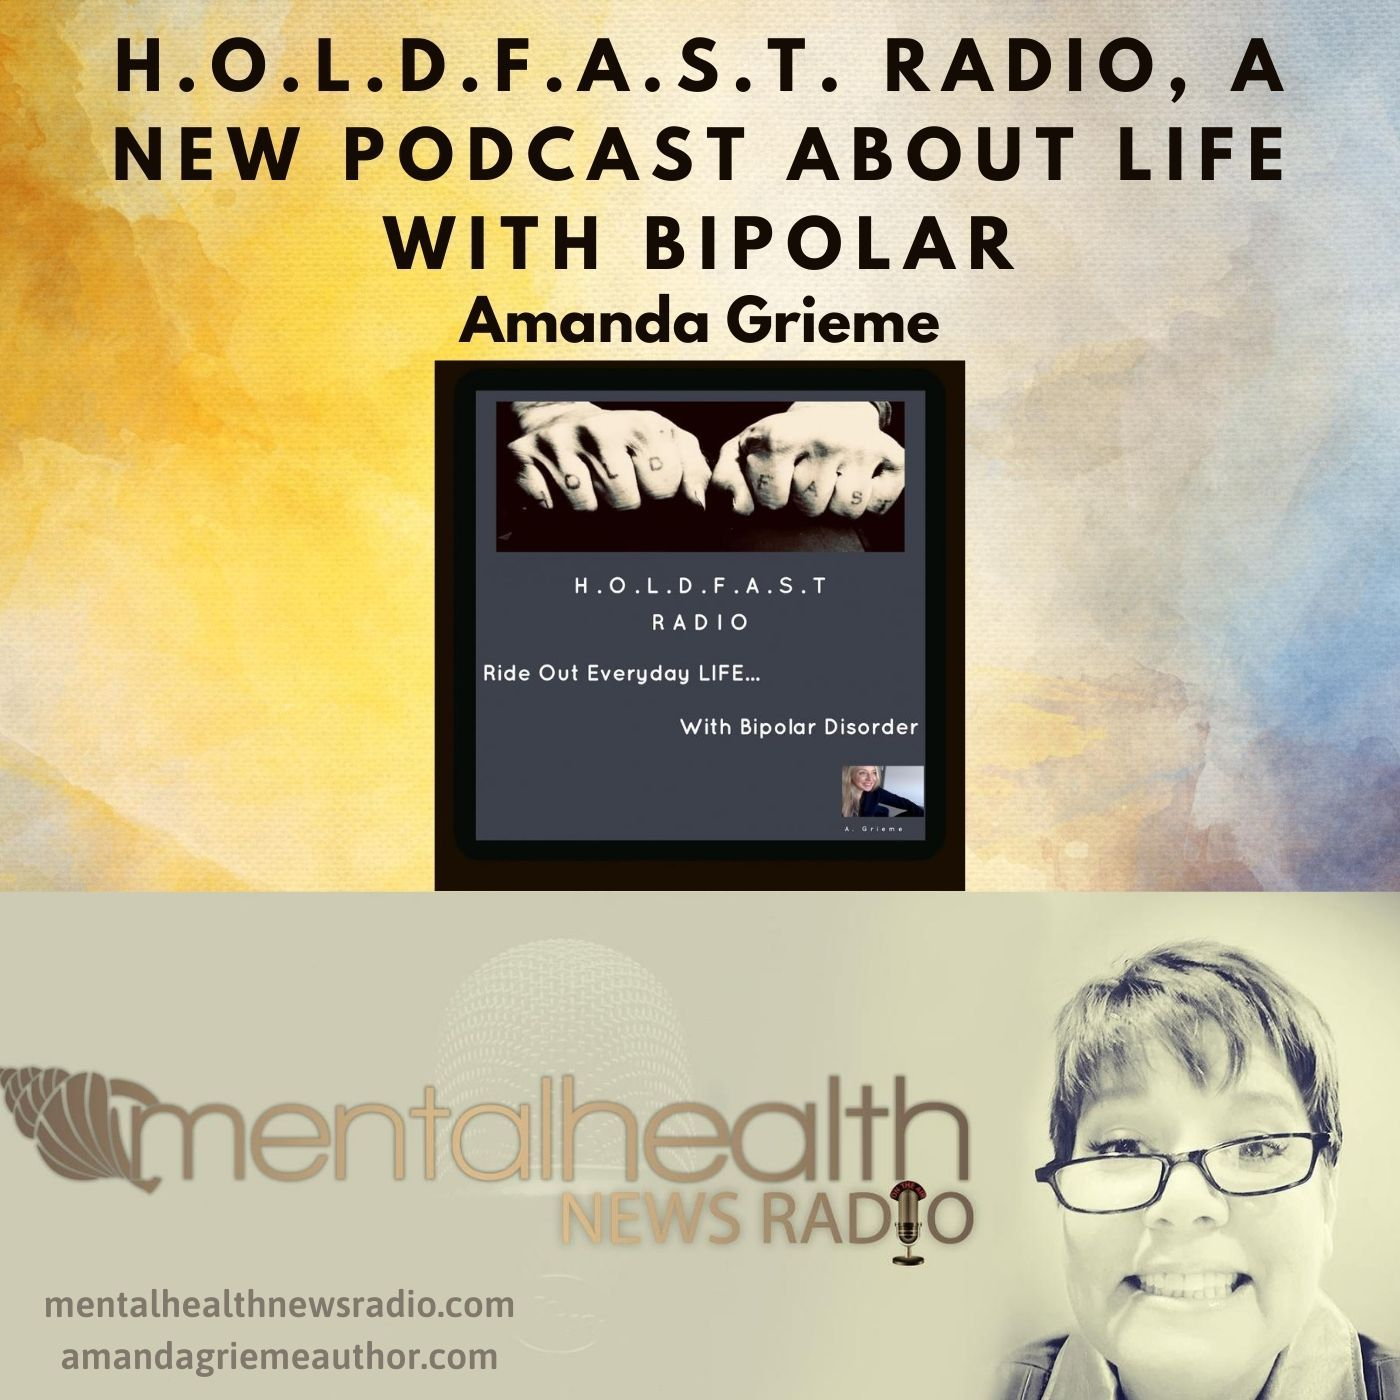 Mental Health News Radio - H.O.L.D.F.A.S.T. Radio, a New Podcast About Life With Bipolar